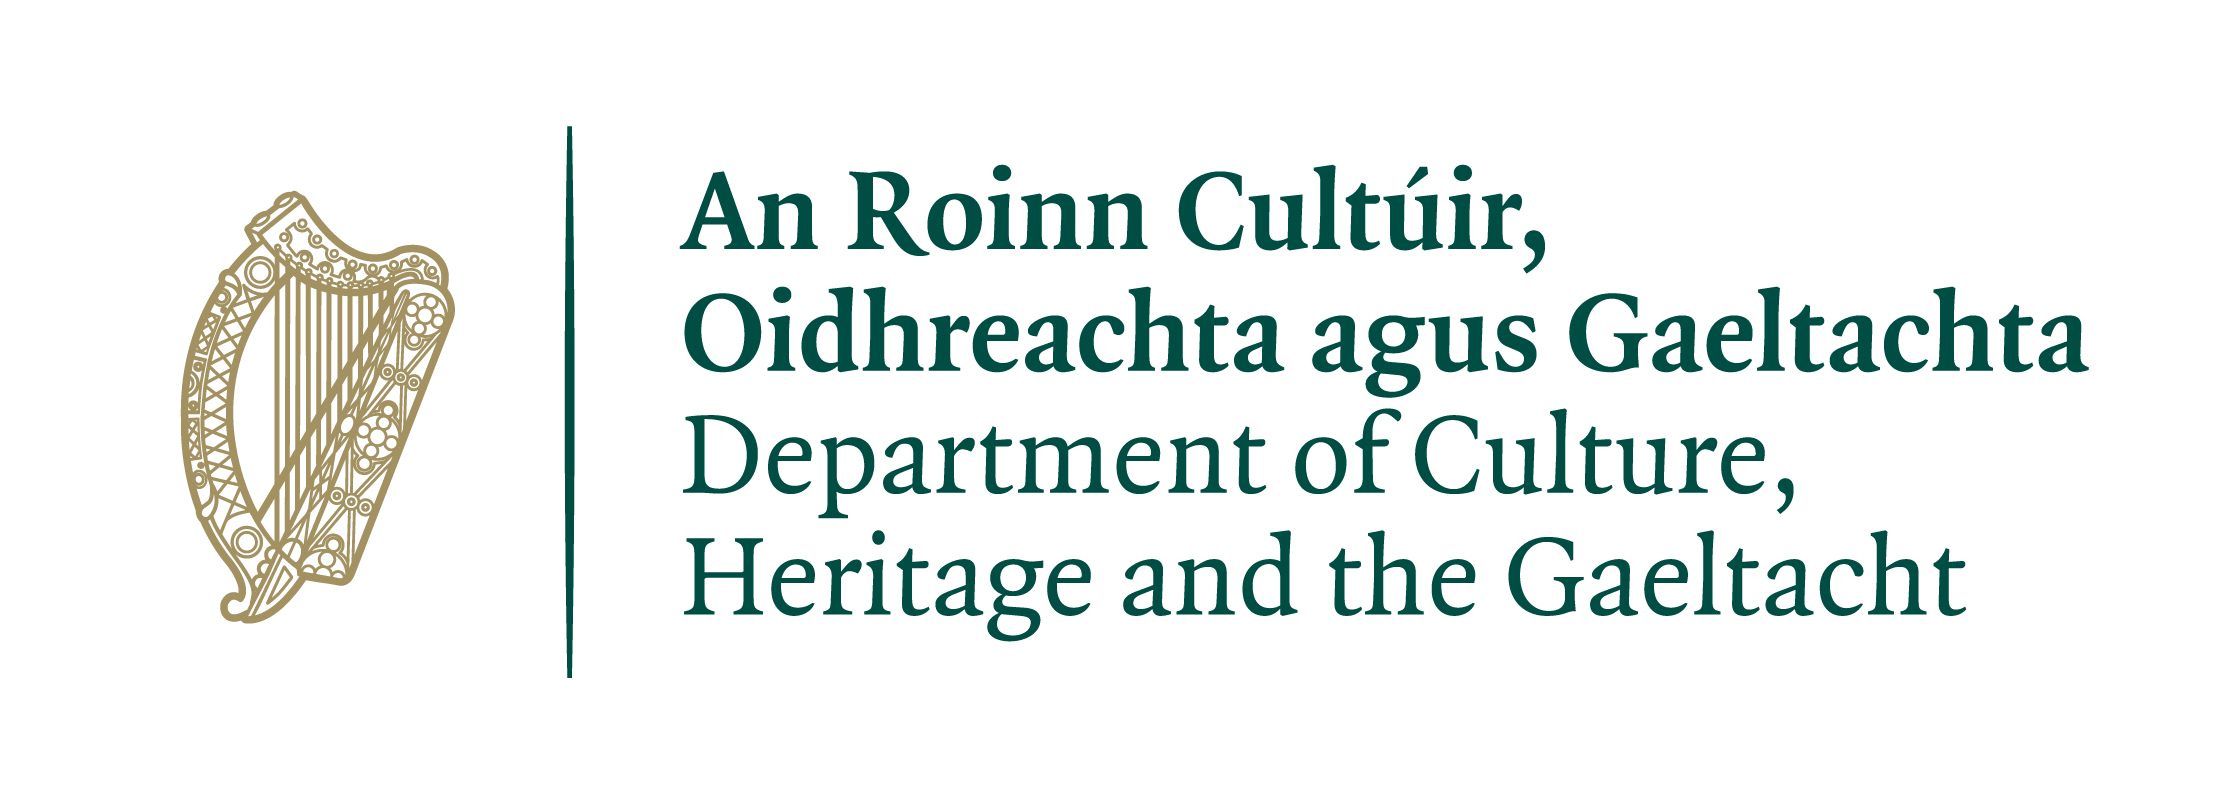 Department of Culture, Heritage and the Gaeltacht ...